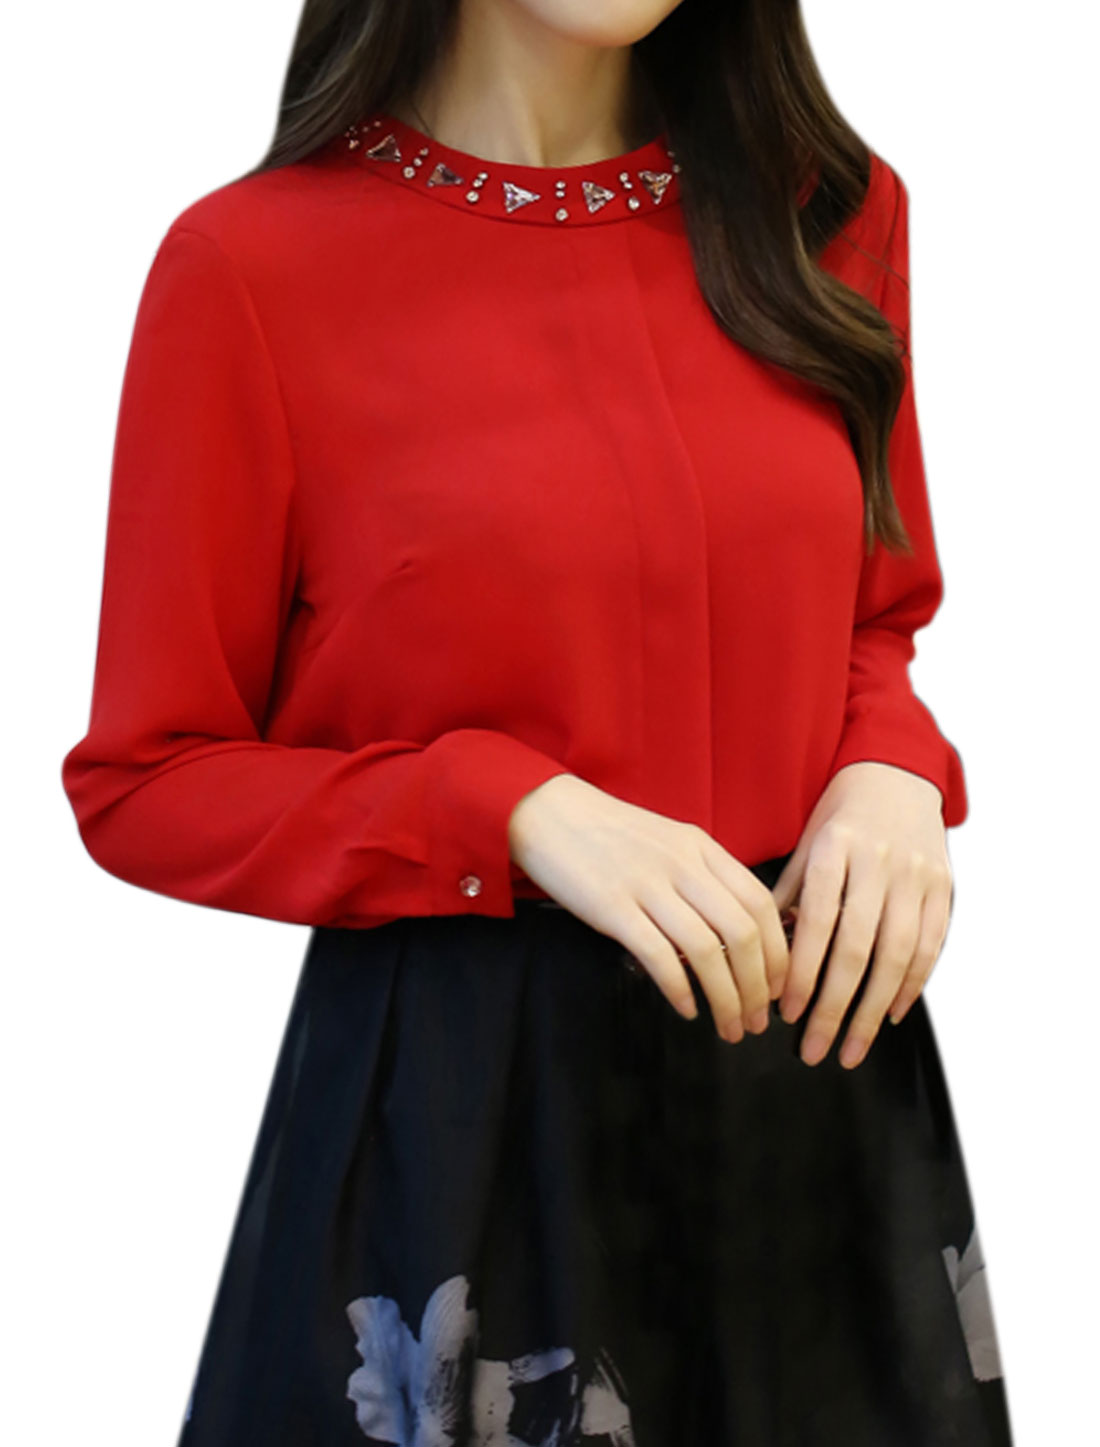 Women Long Sleeves Crew Neck Rhinestone Decor Casual Blouse Red L